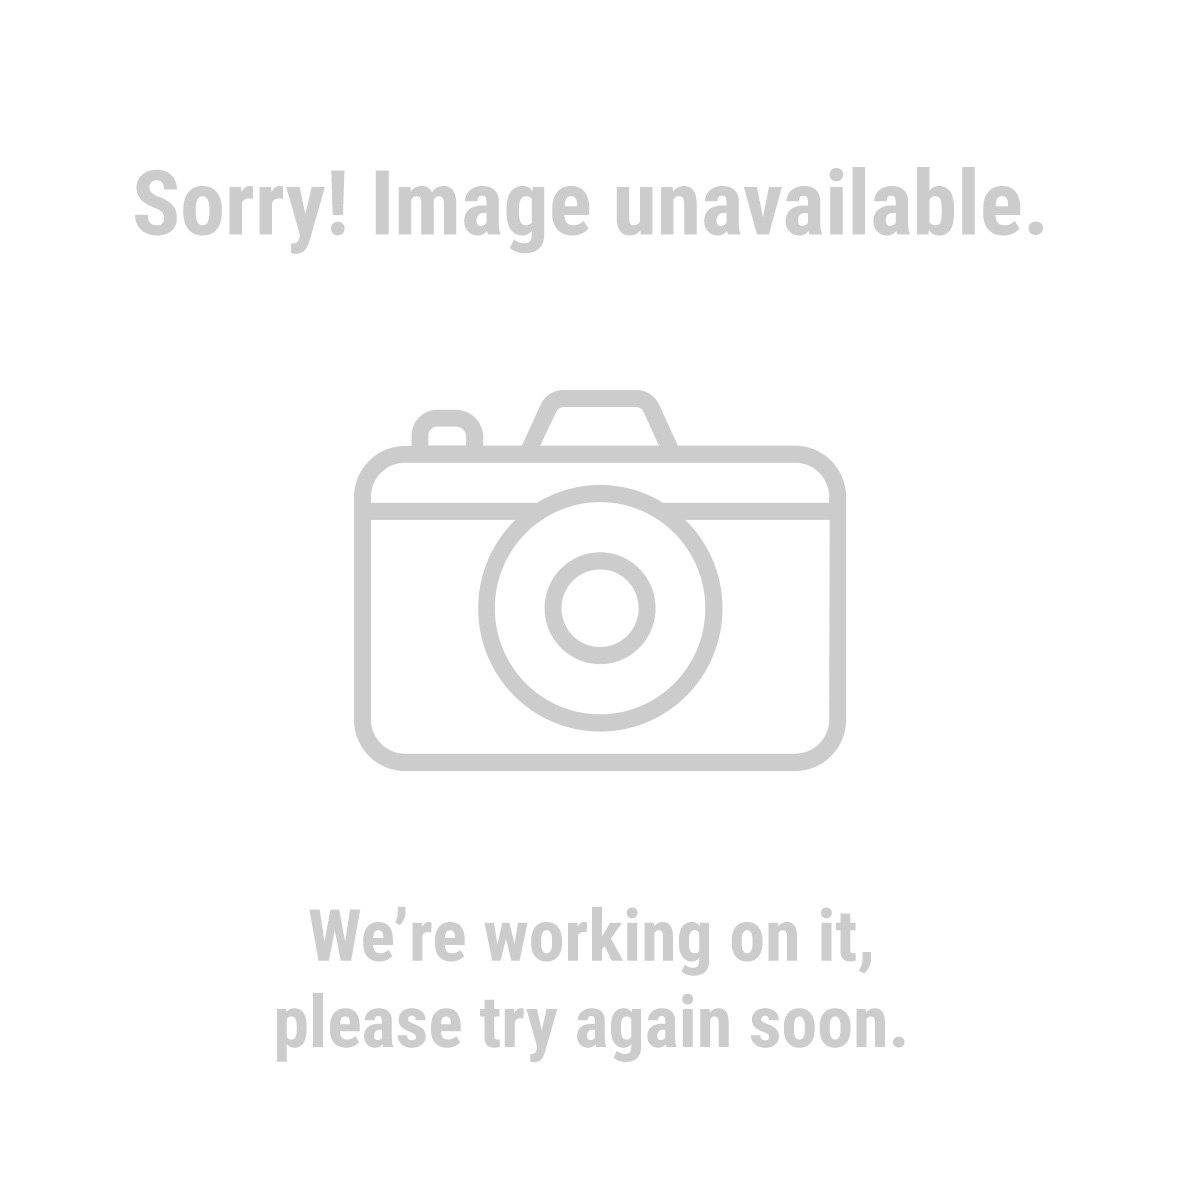 HFT 68217 10 ft. x 15 ft. Portable Garage